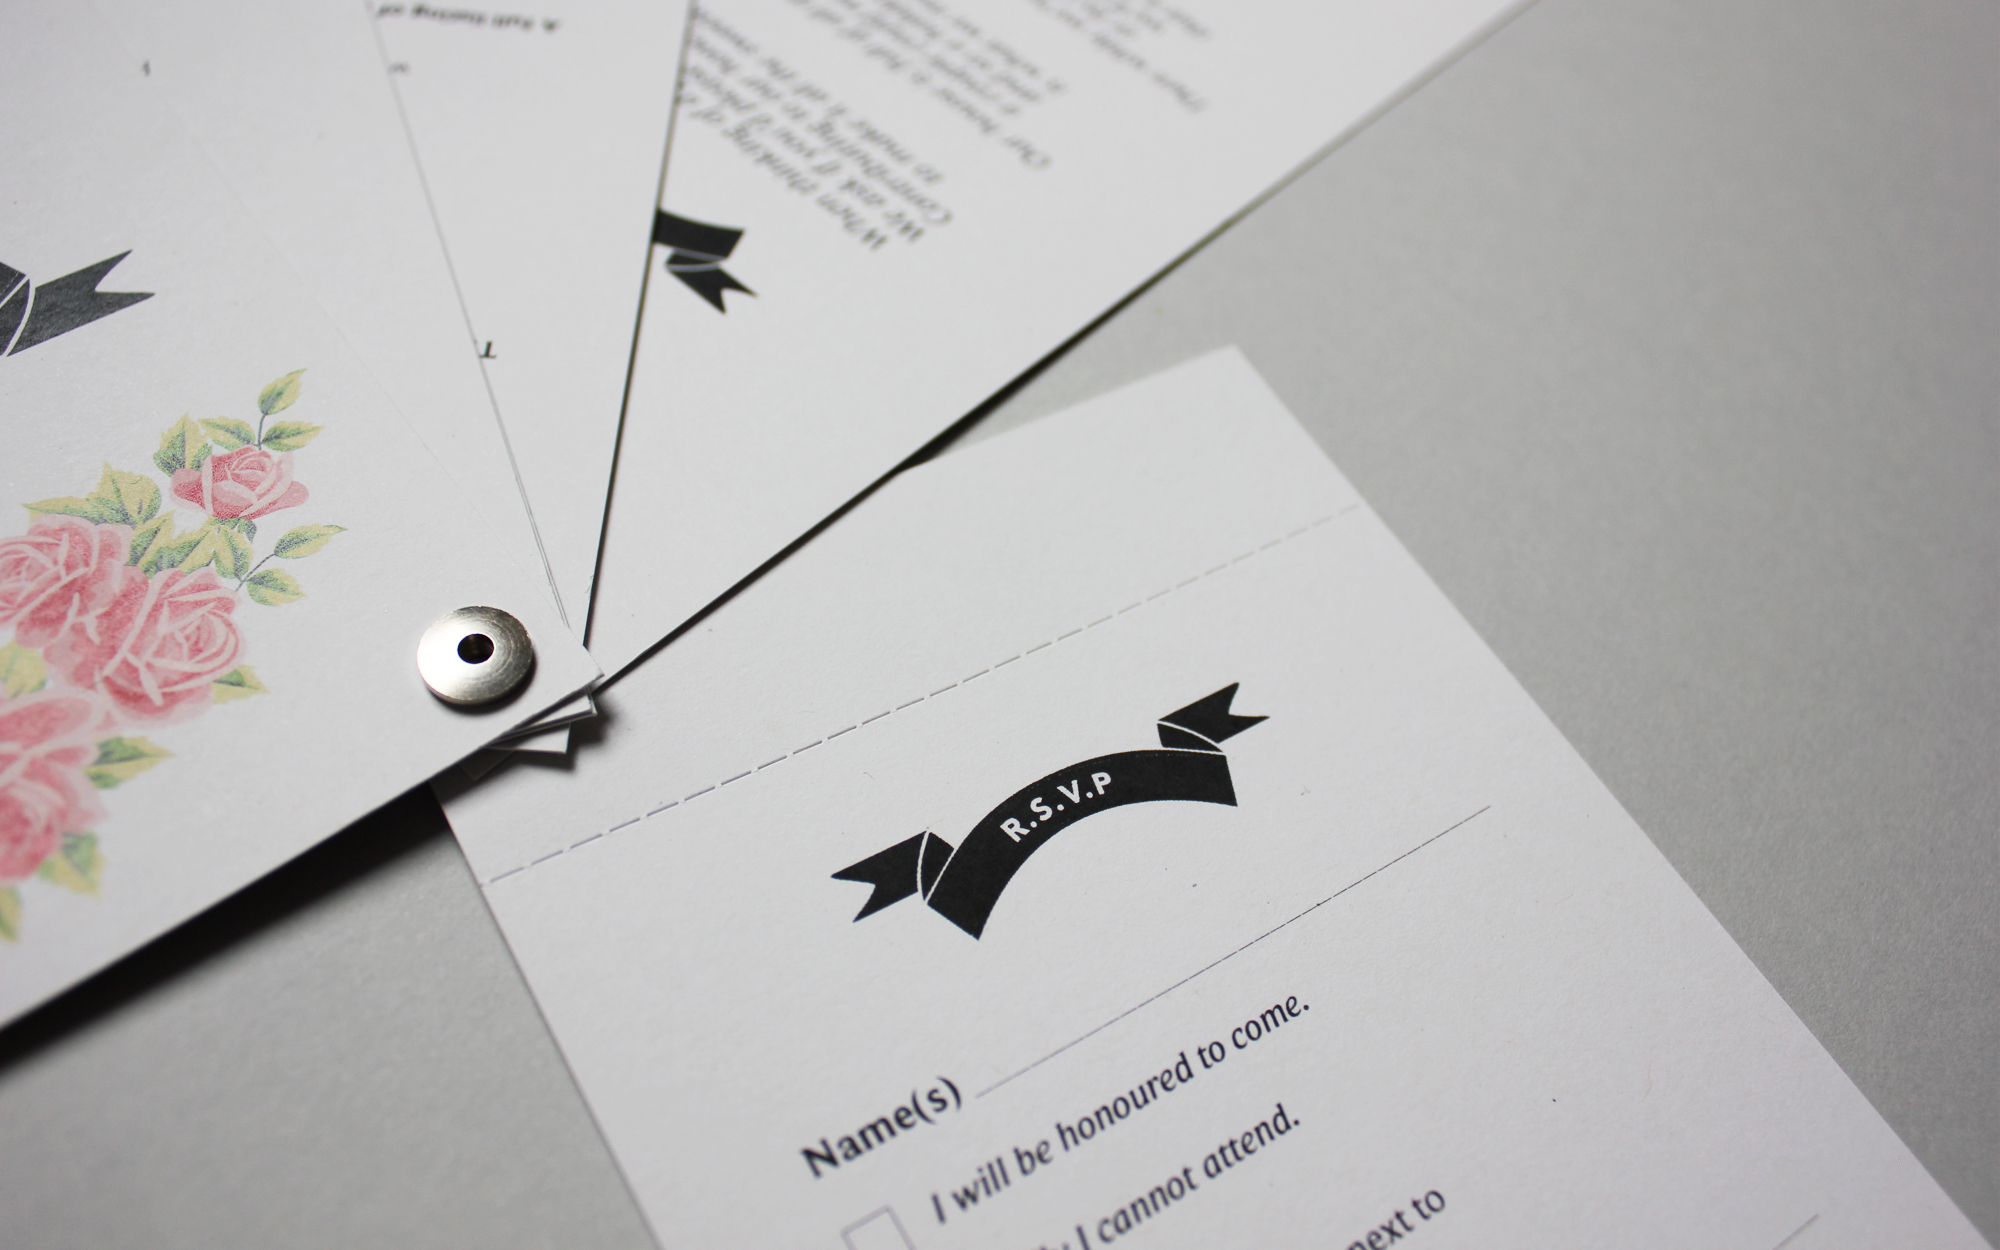 matthew_pomorski_graphic_designer_print_wedding_stationary_3